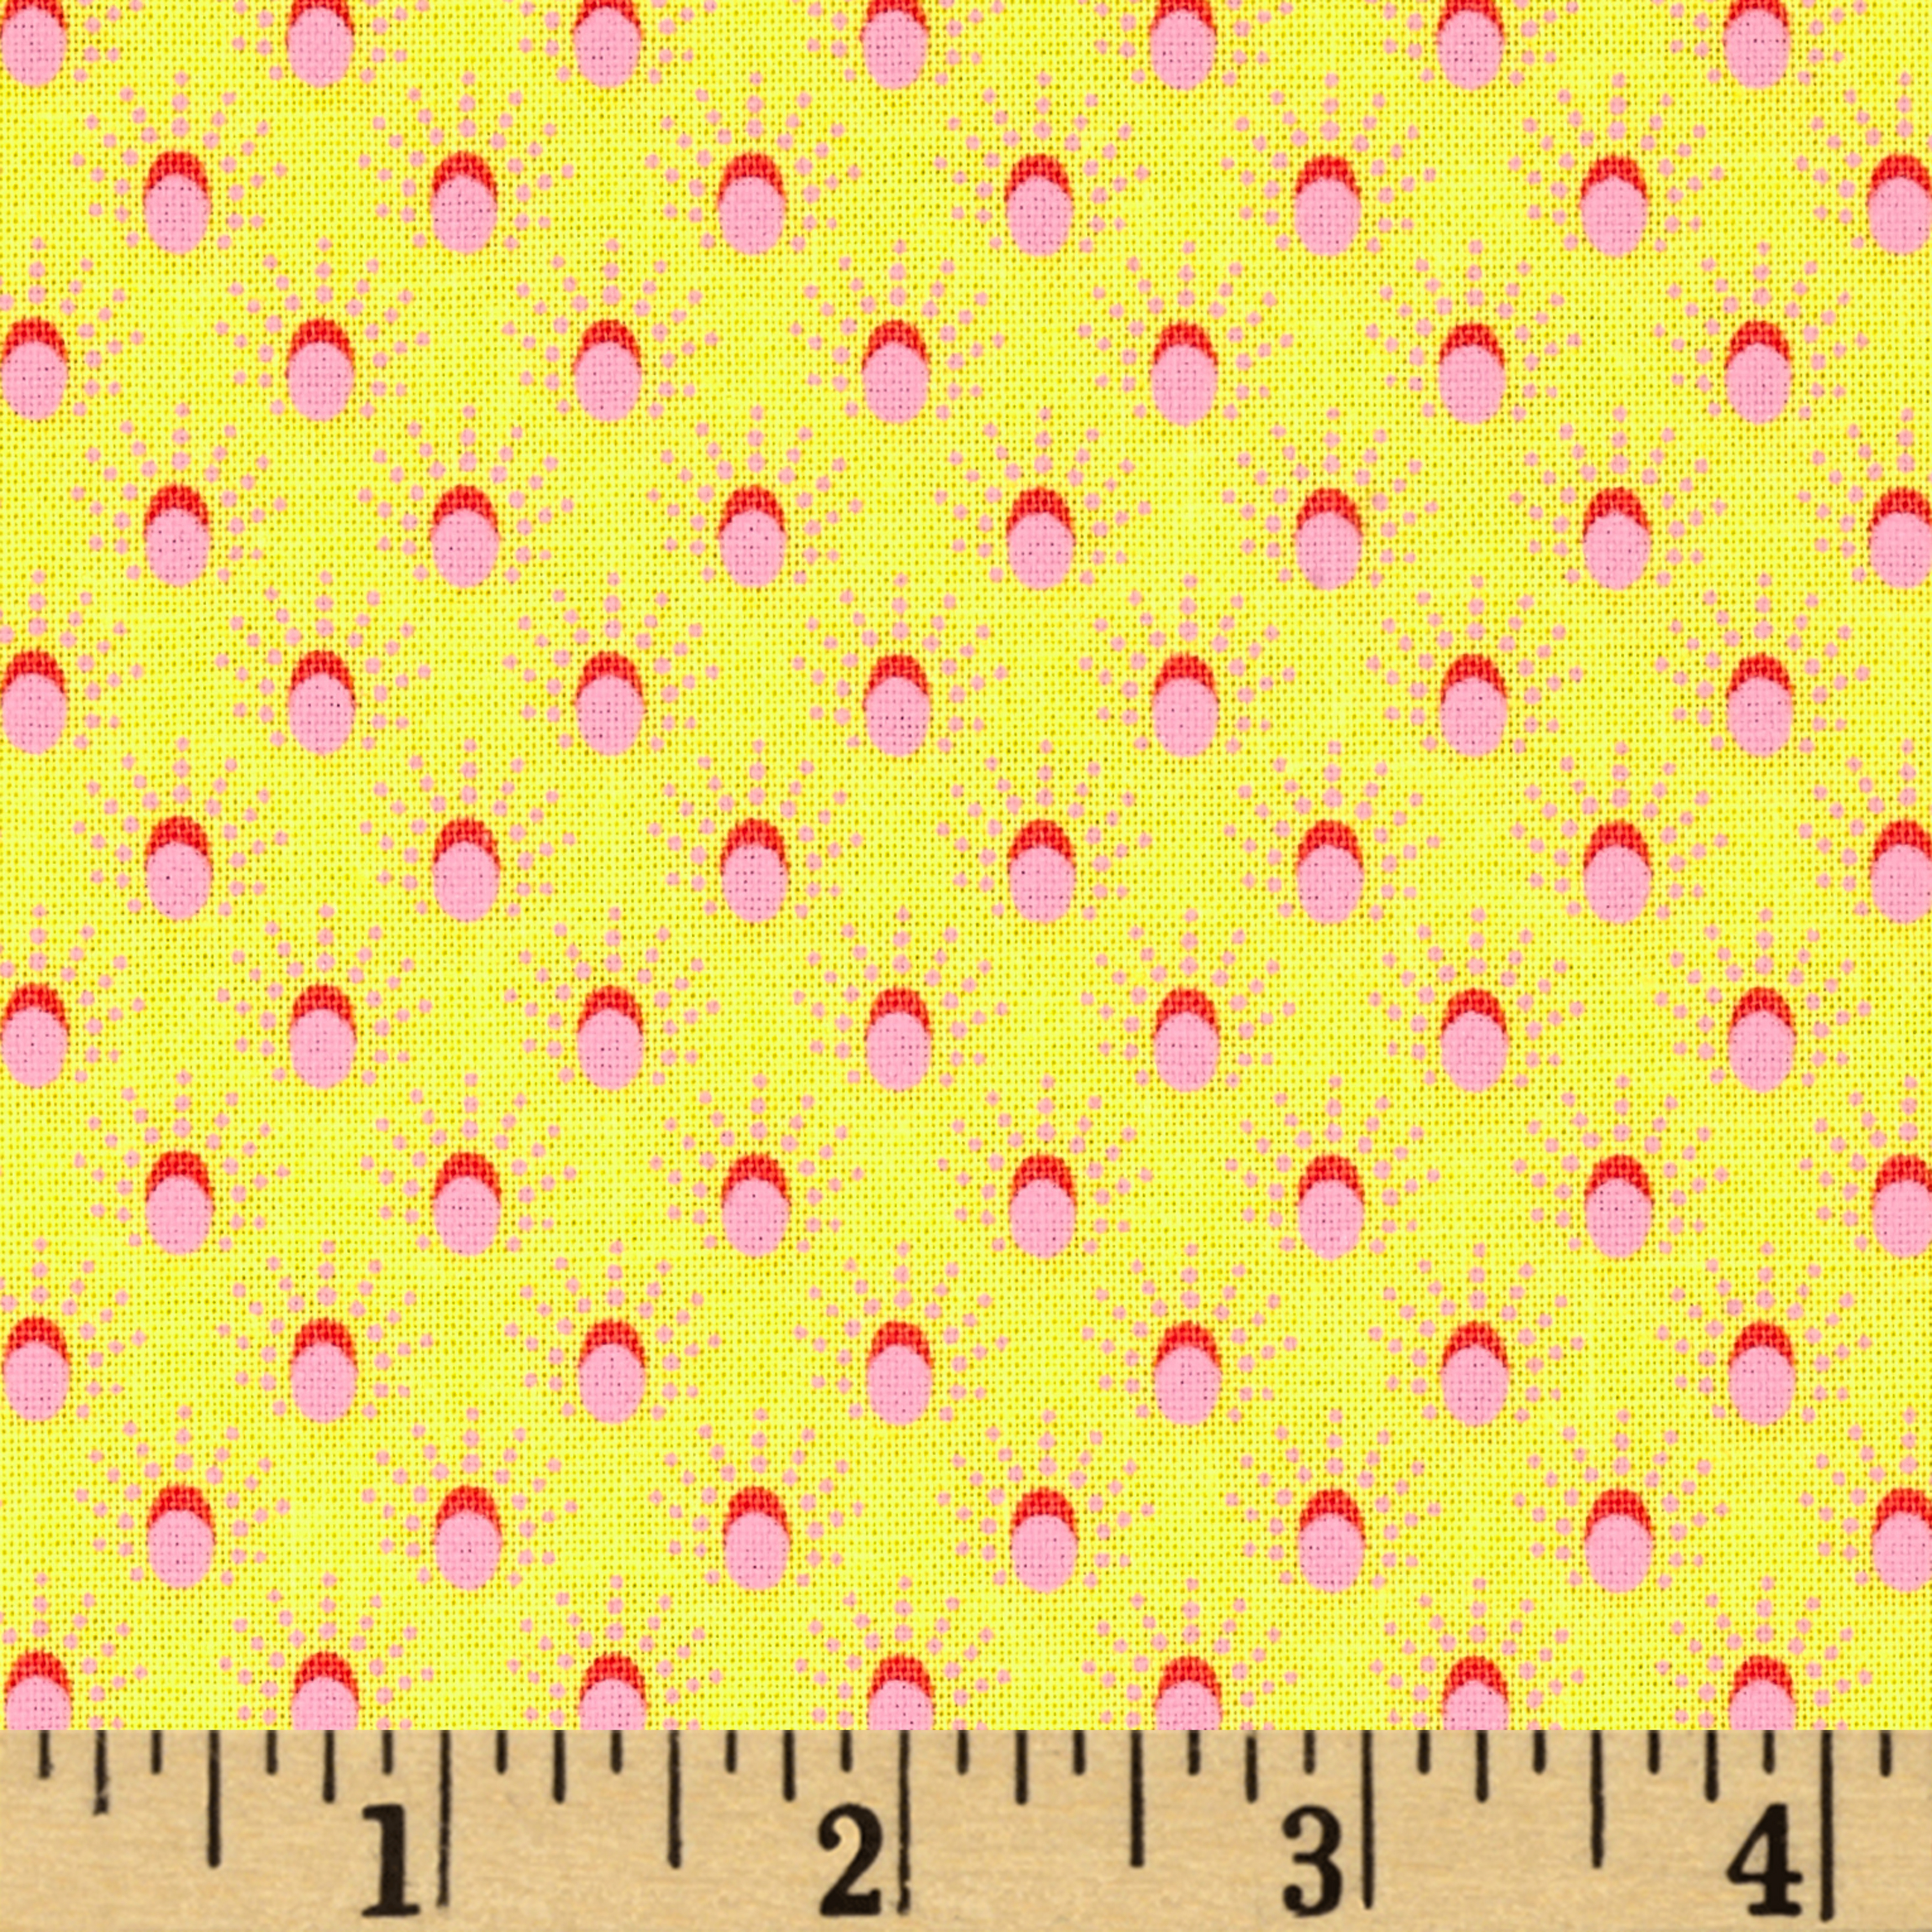 Meadow Storm Sun Shower Dots Yellow Fabric by Marcus in USA